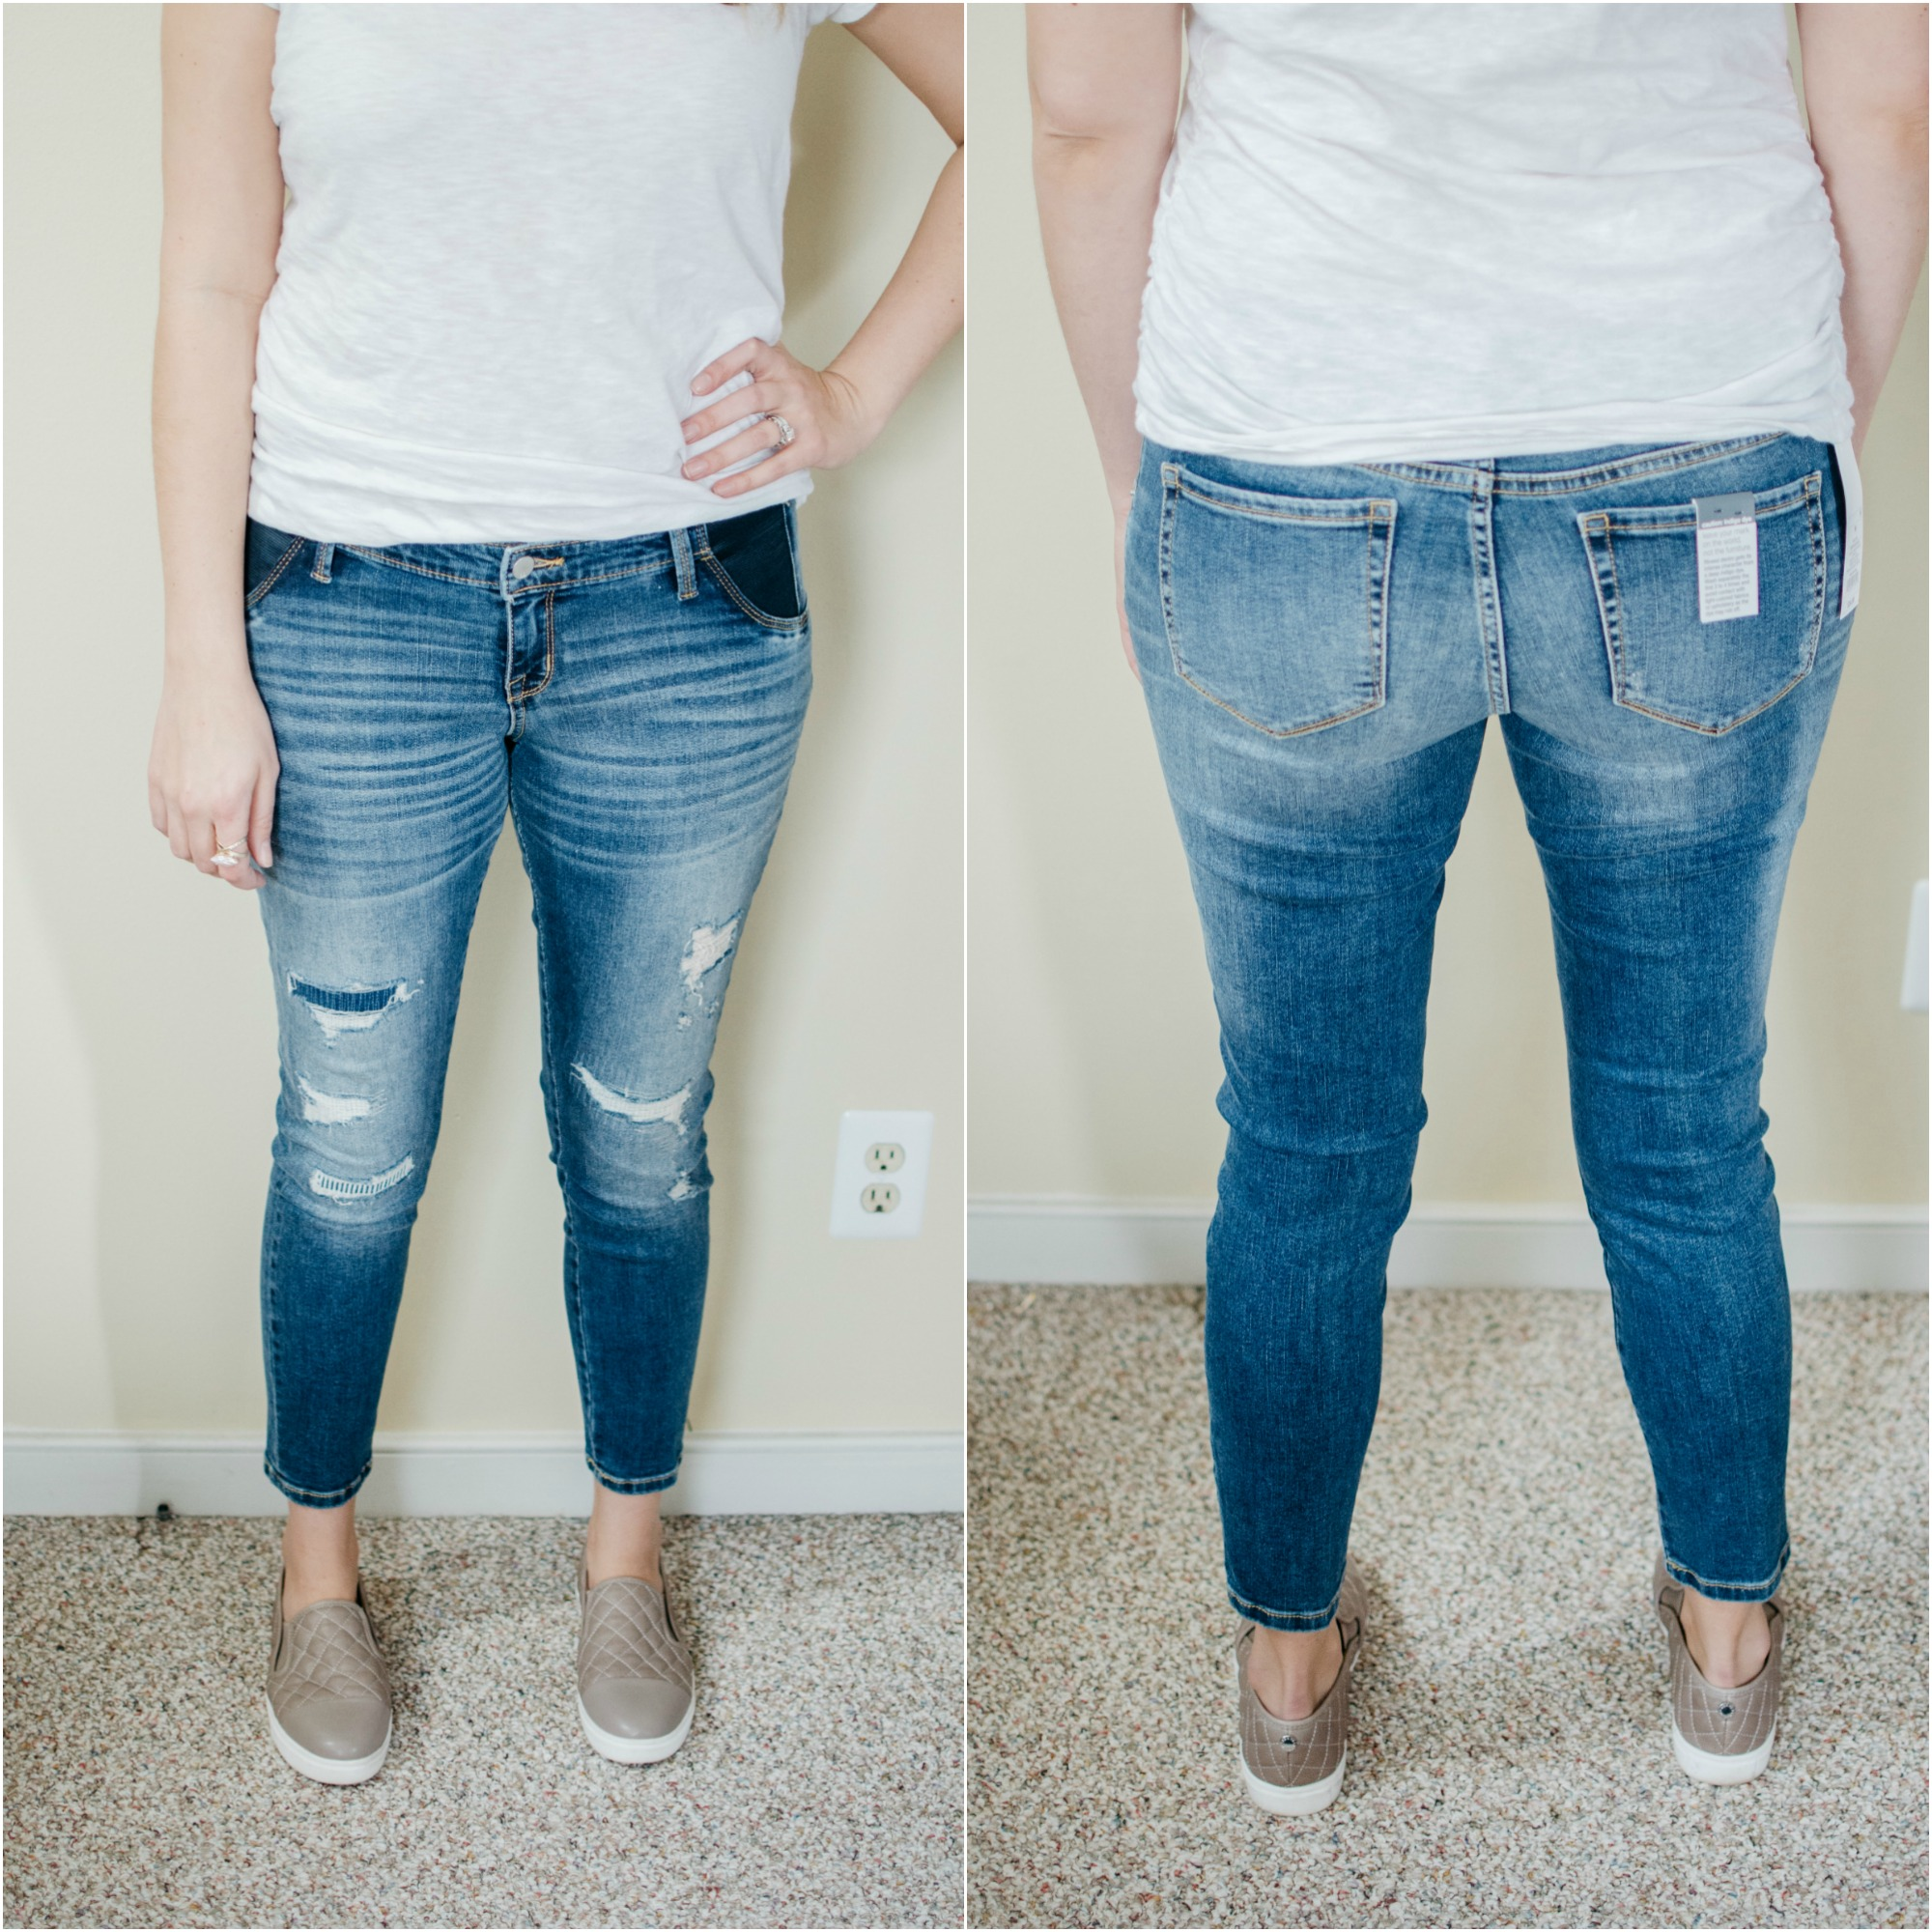 1c13dcc8e5ea8 best maternity jeans - target maternity jeans review